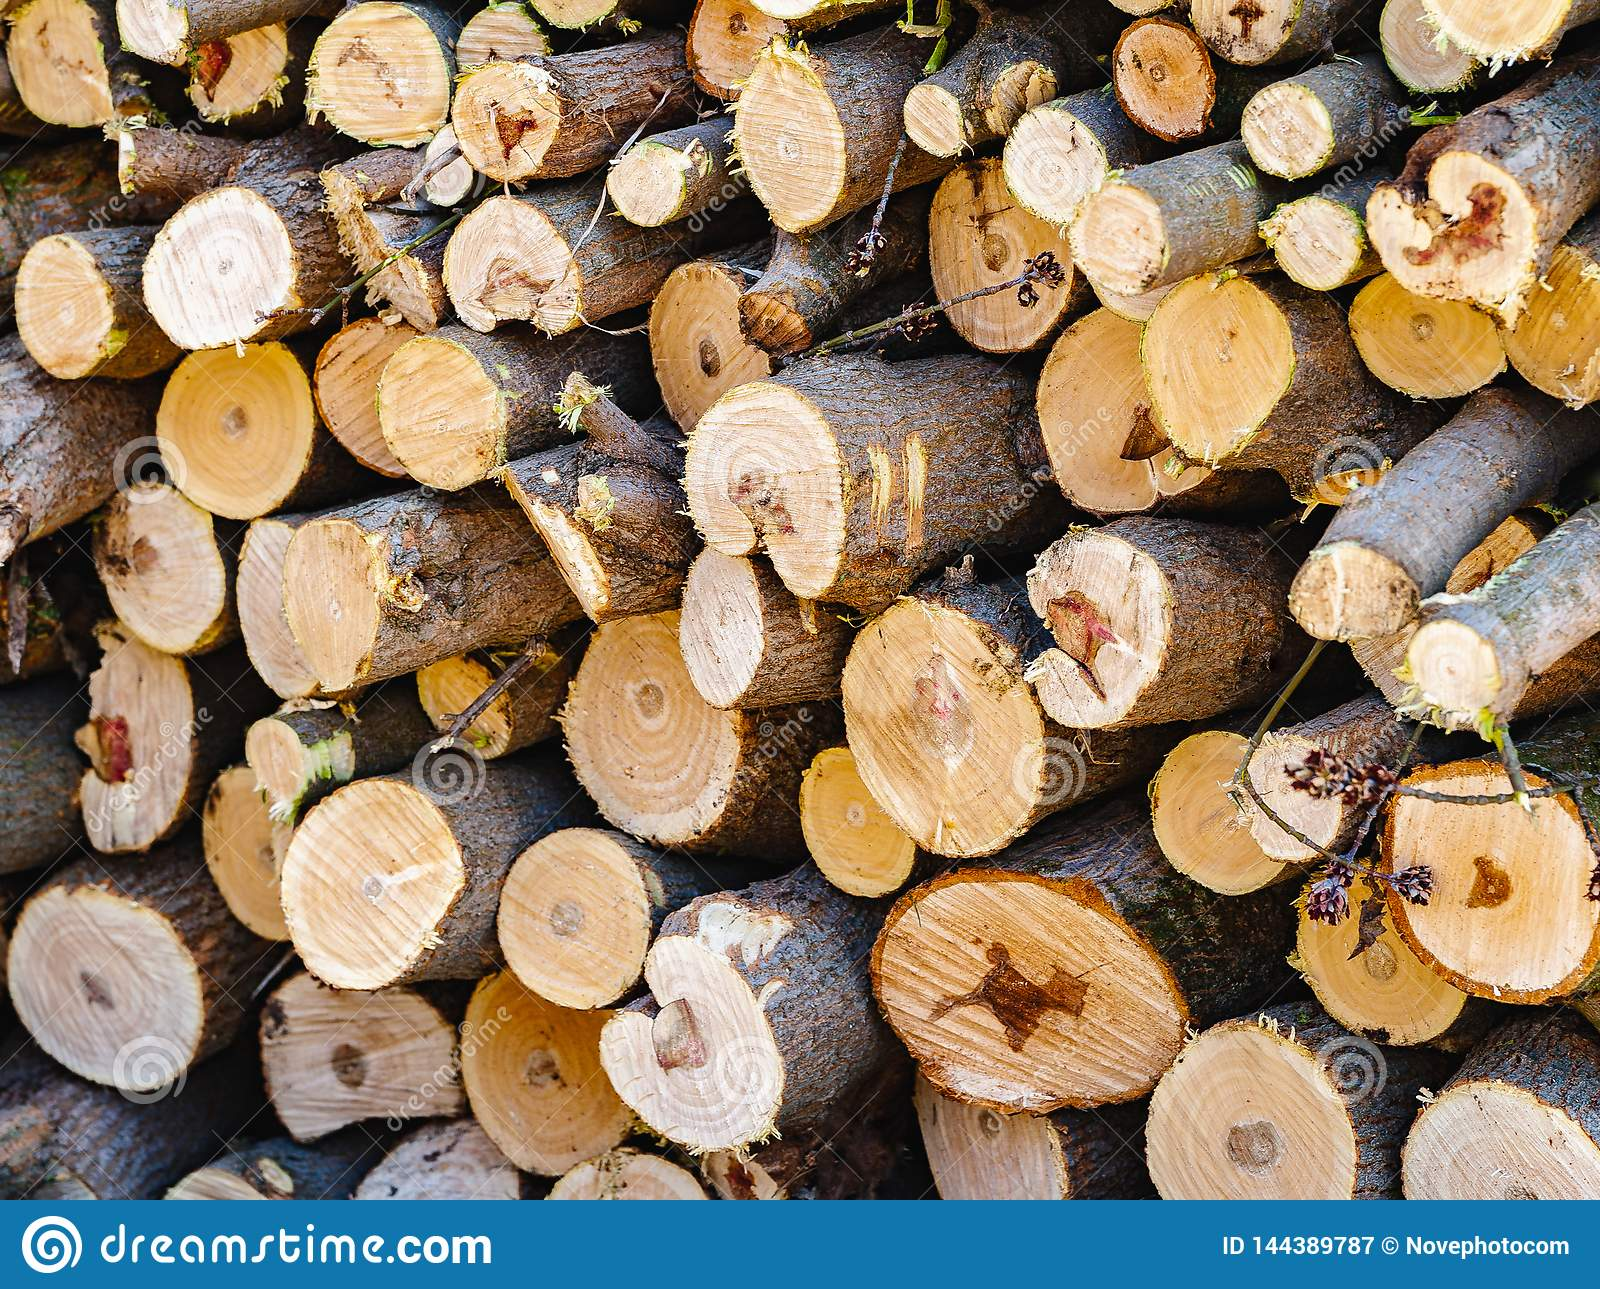 Firewood sawn stack. A pile of chopped wood